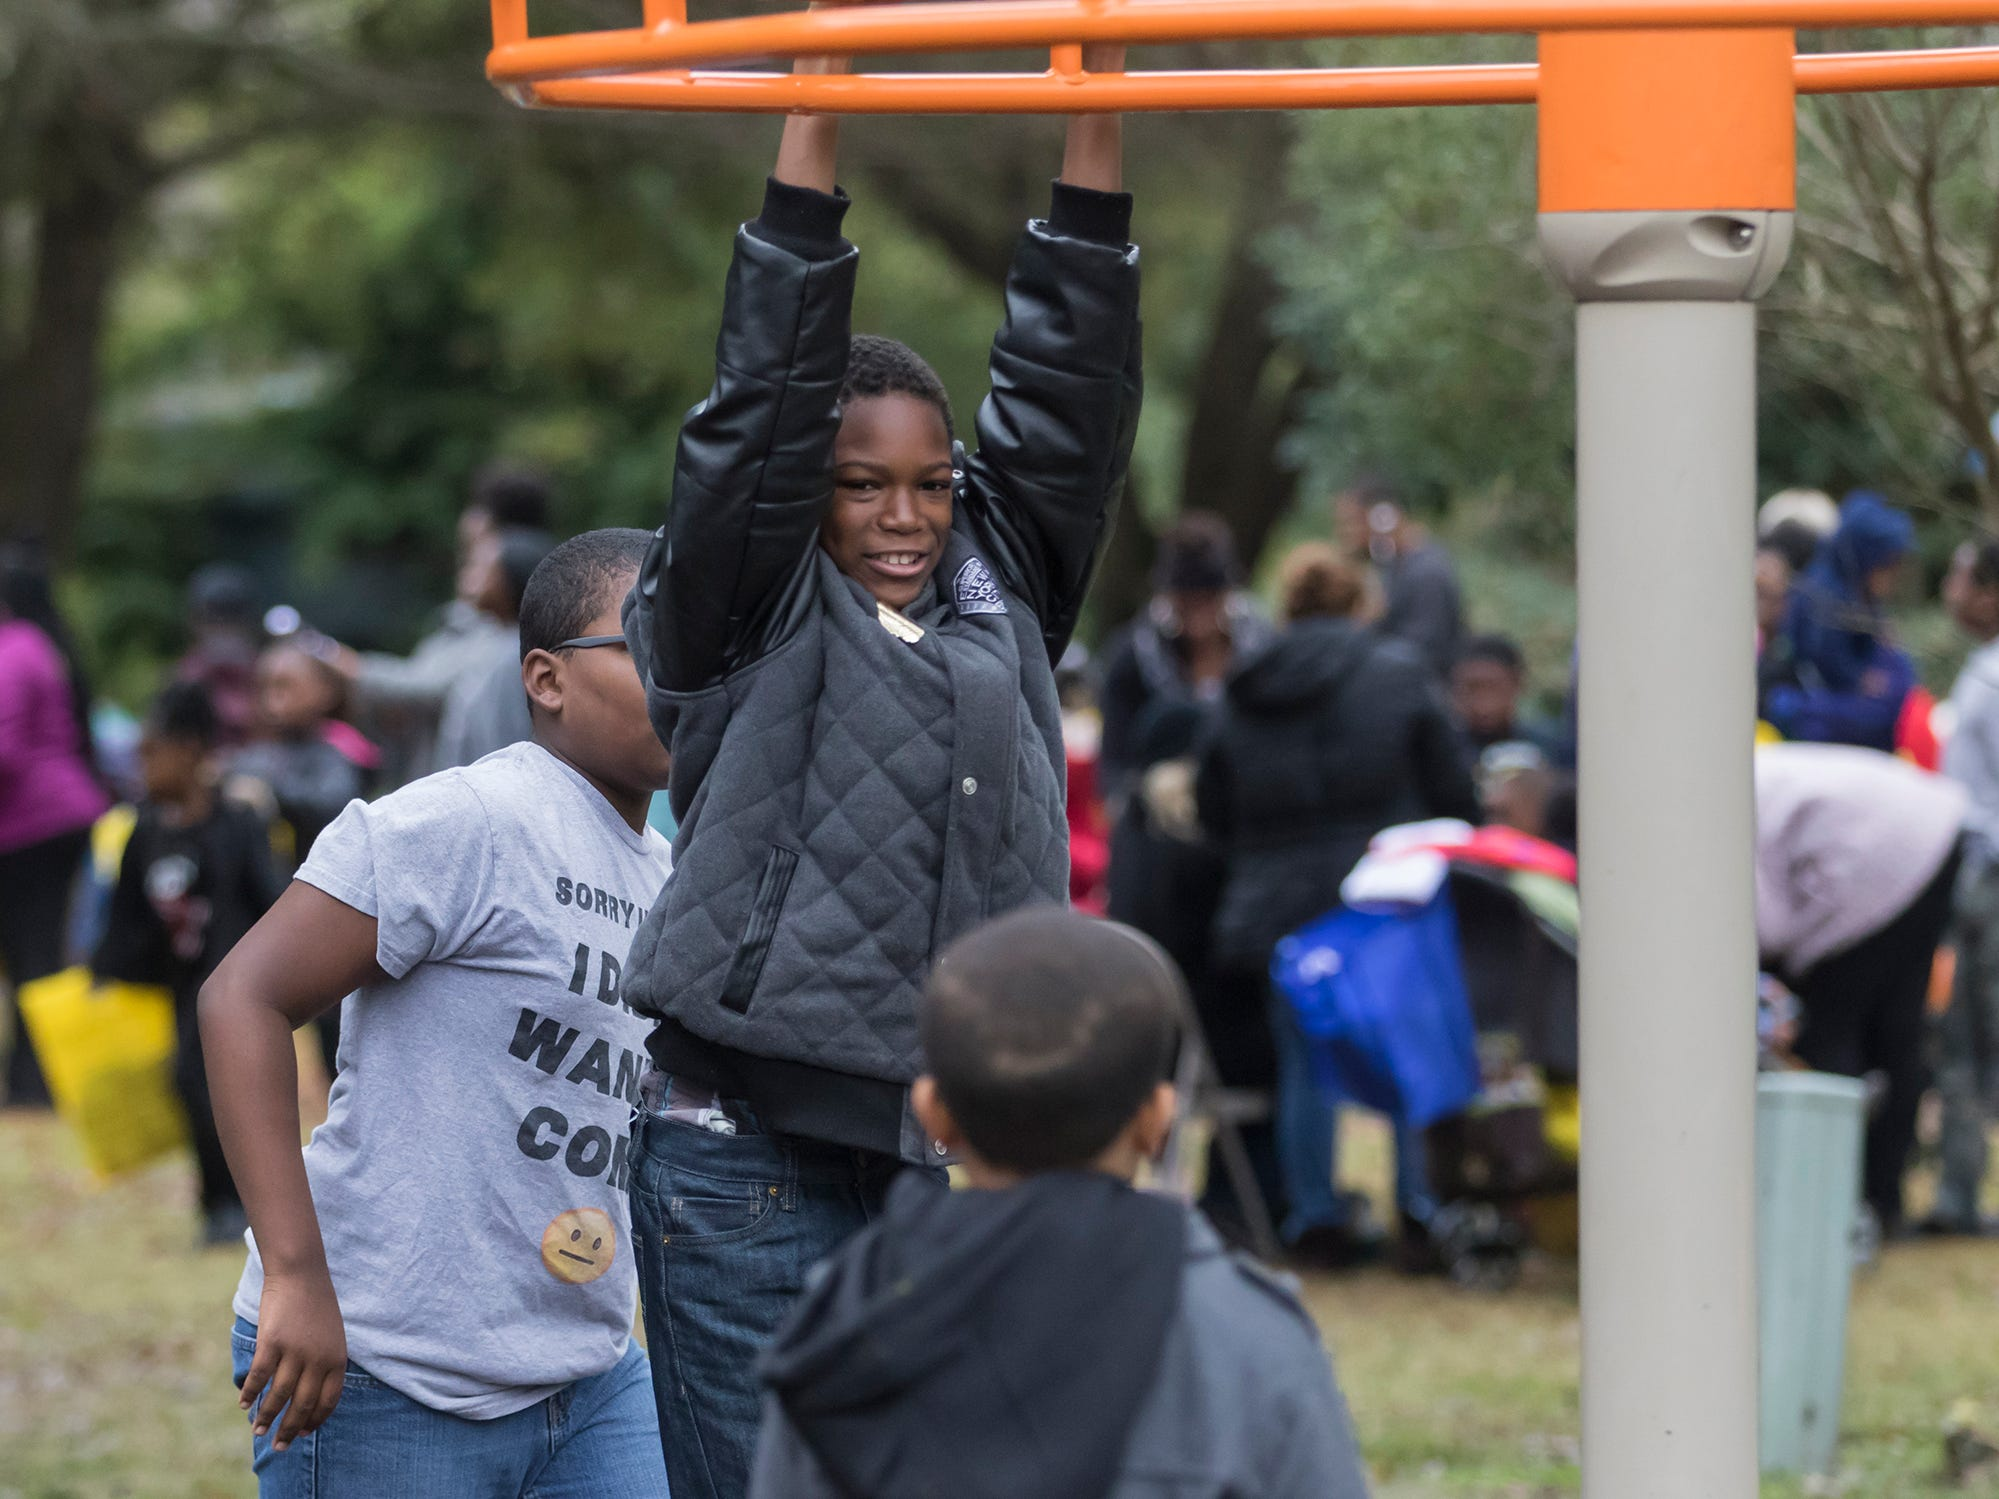 The Louisiana Purchase Zoo held Jungle Bells in Monroe, La. on Nov. 15. The free event featured a visit from Santa and a bicycle raffle for kids.